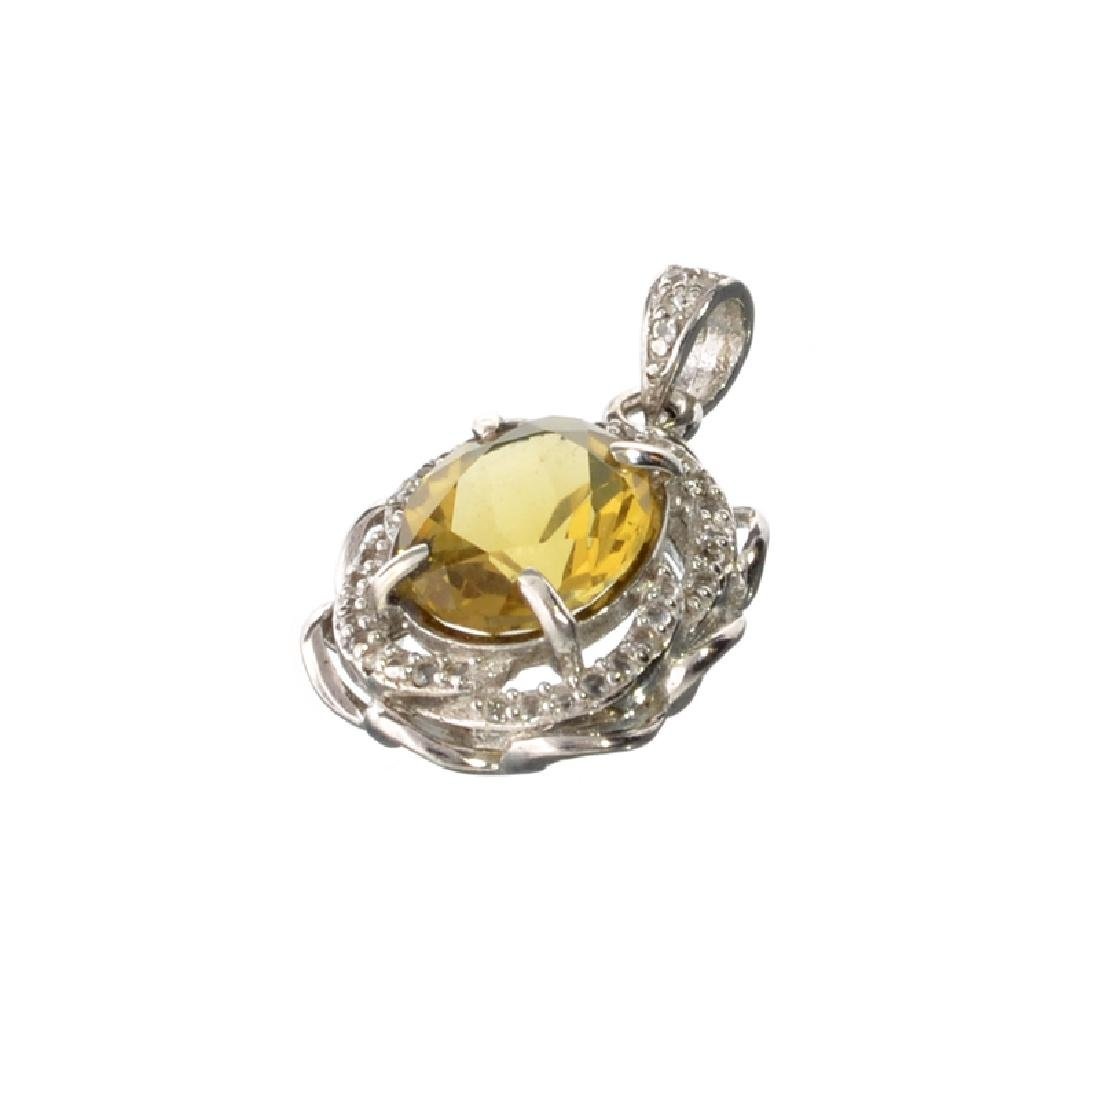 APP: 0.9k Fine Jewelry 3.00CT Oval Cut Citrine And